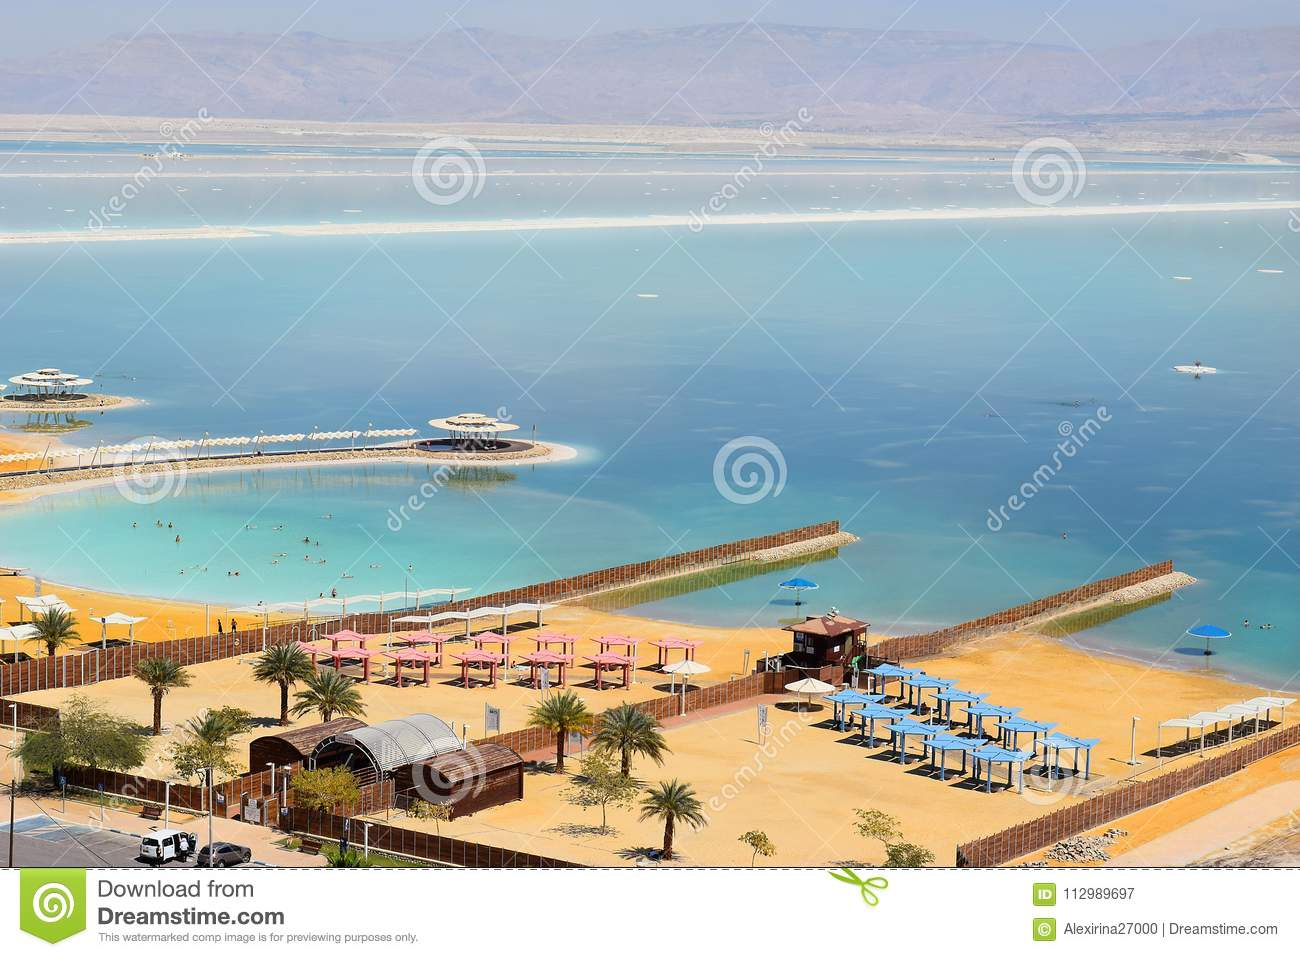 Landscape at the Dead Sea, Israel shore